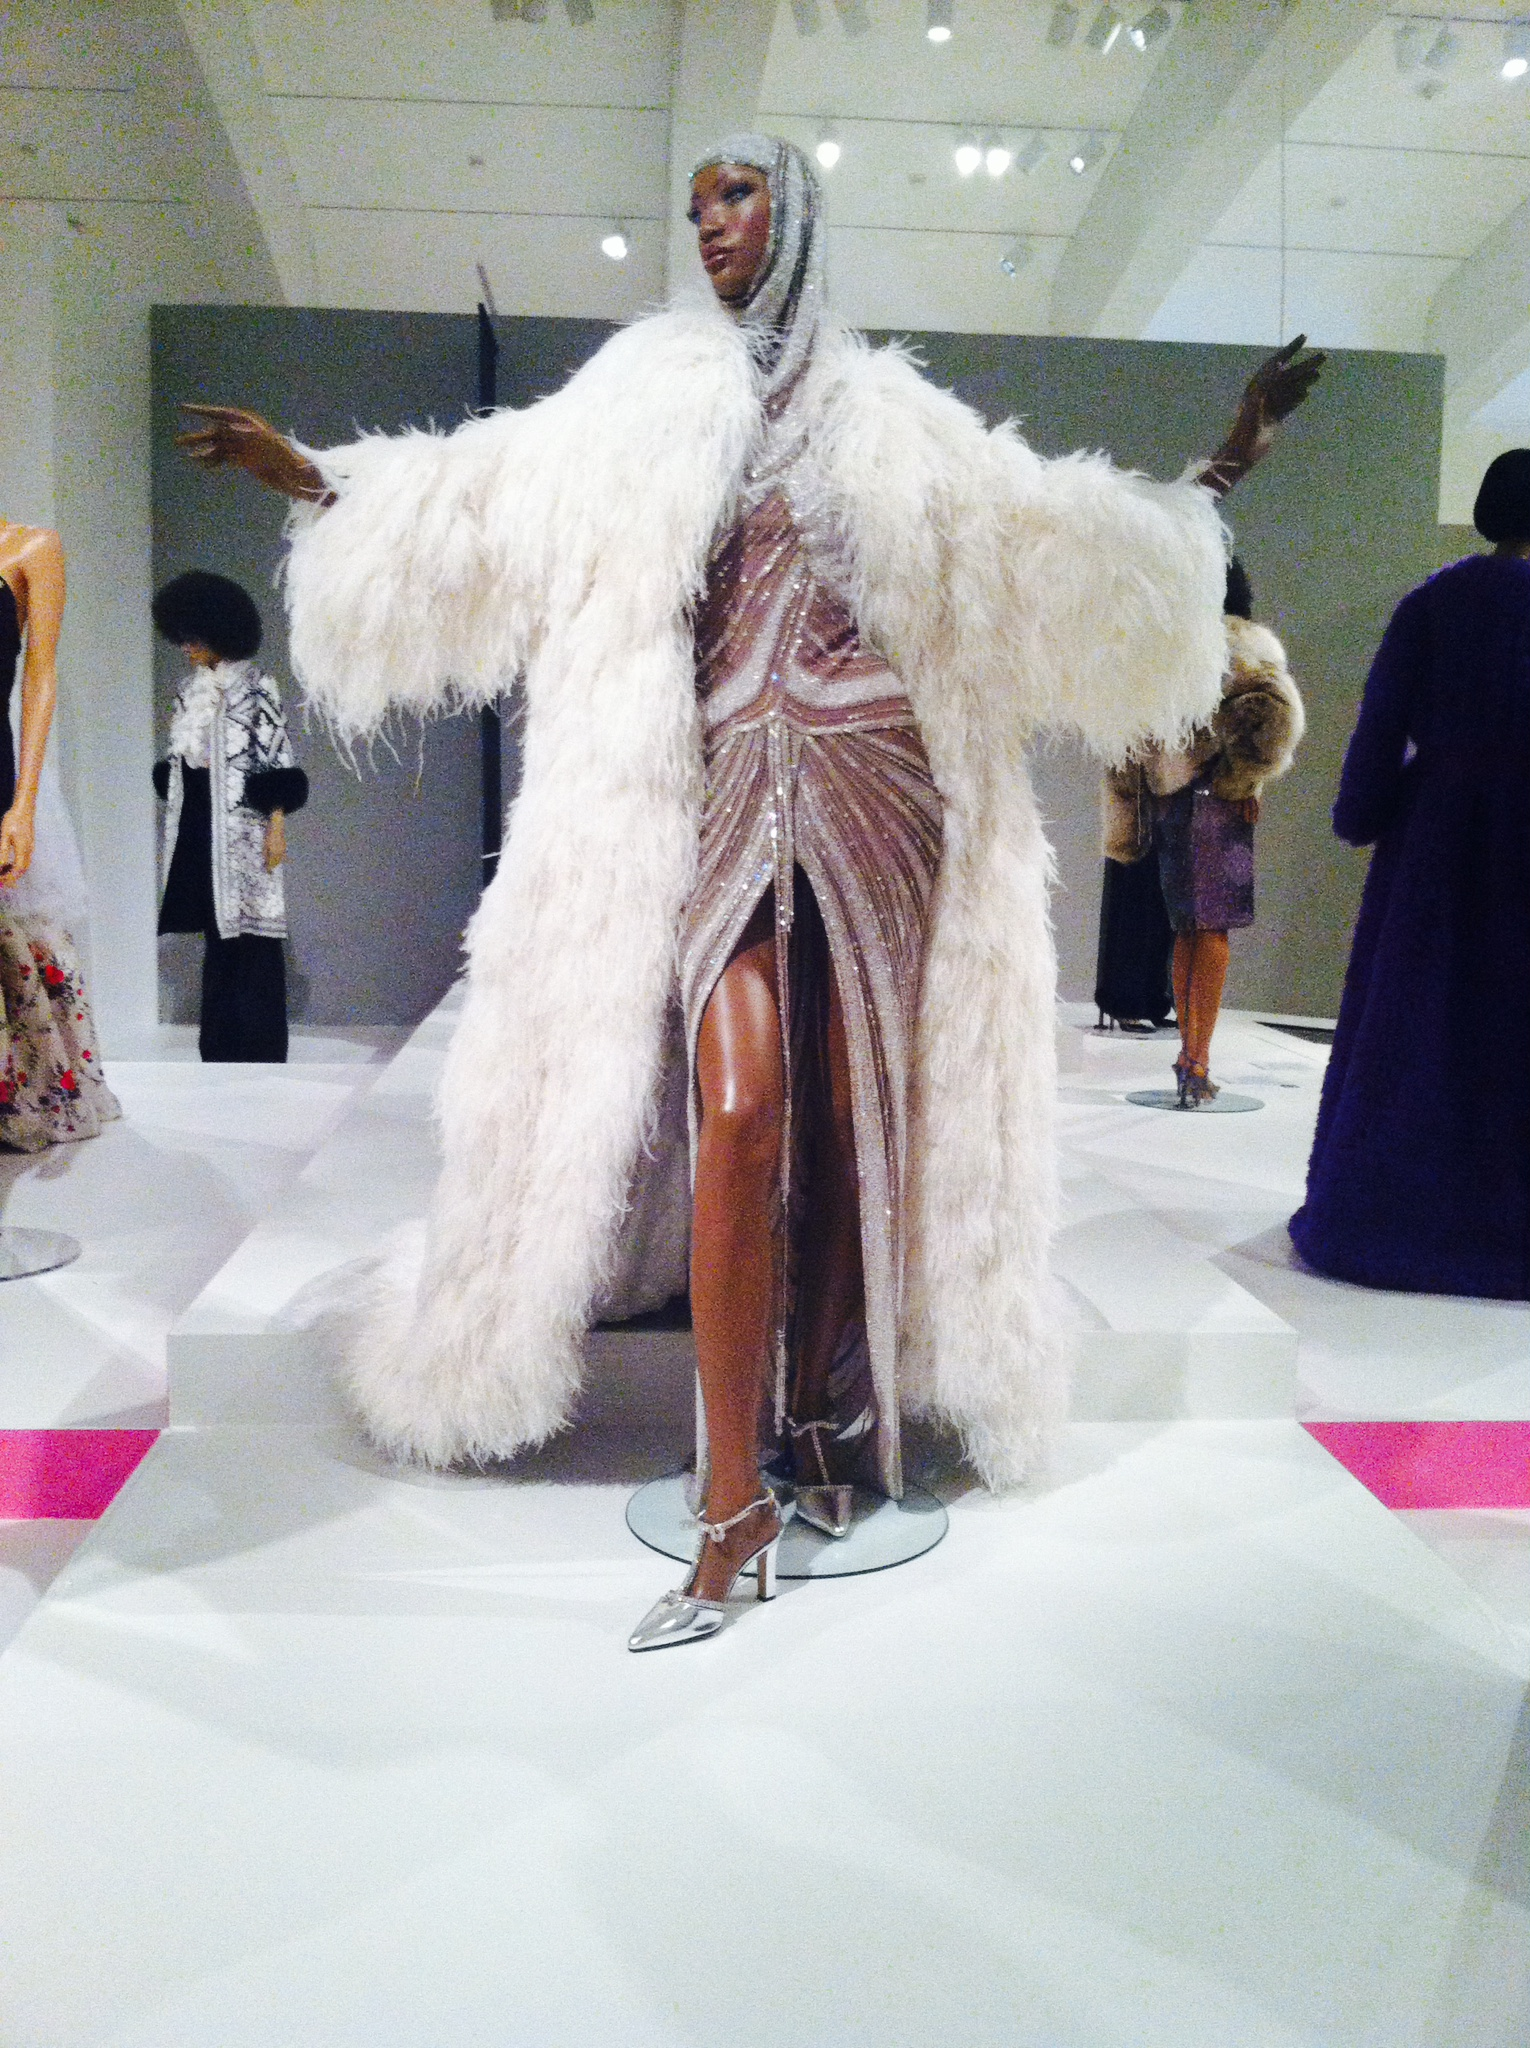 This dazzling evening ensemble, designed by Bob Mackie, can be found in the 'Power' portion of the exhibit. Photo by Emma Wallo